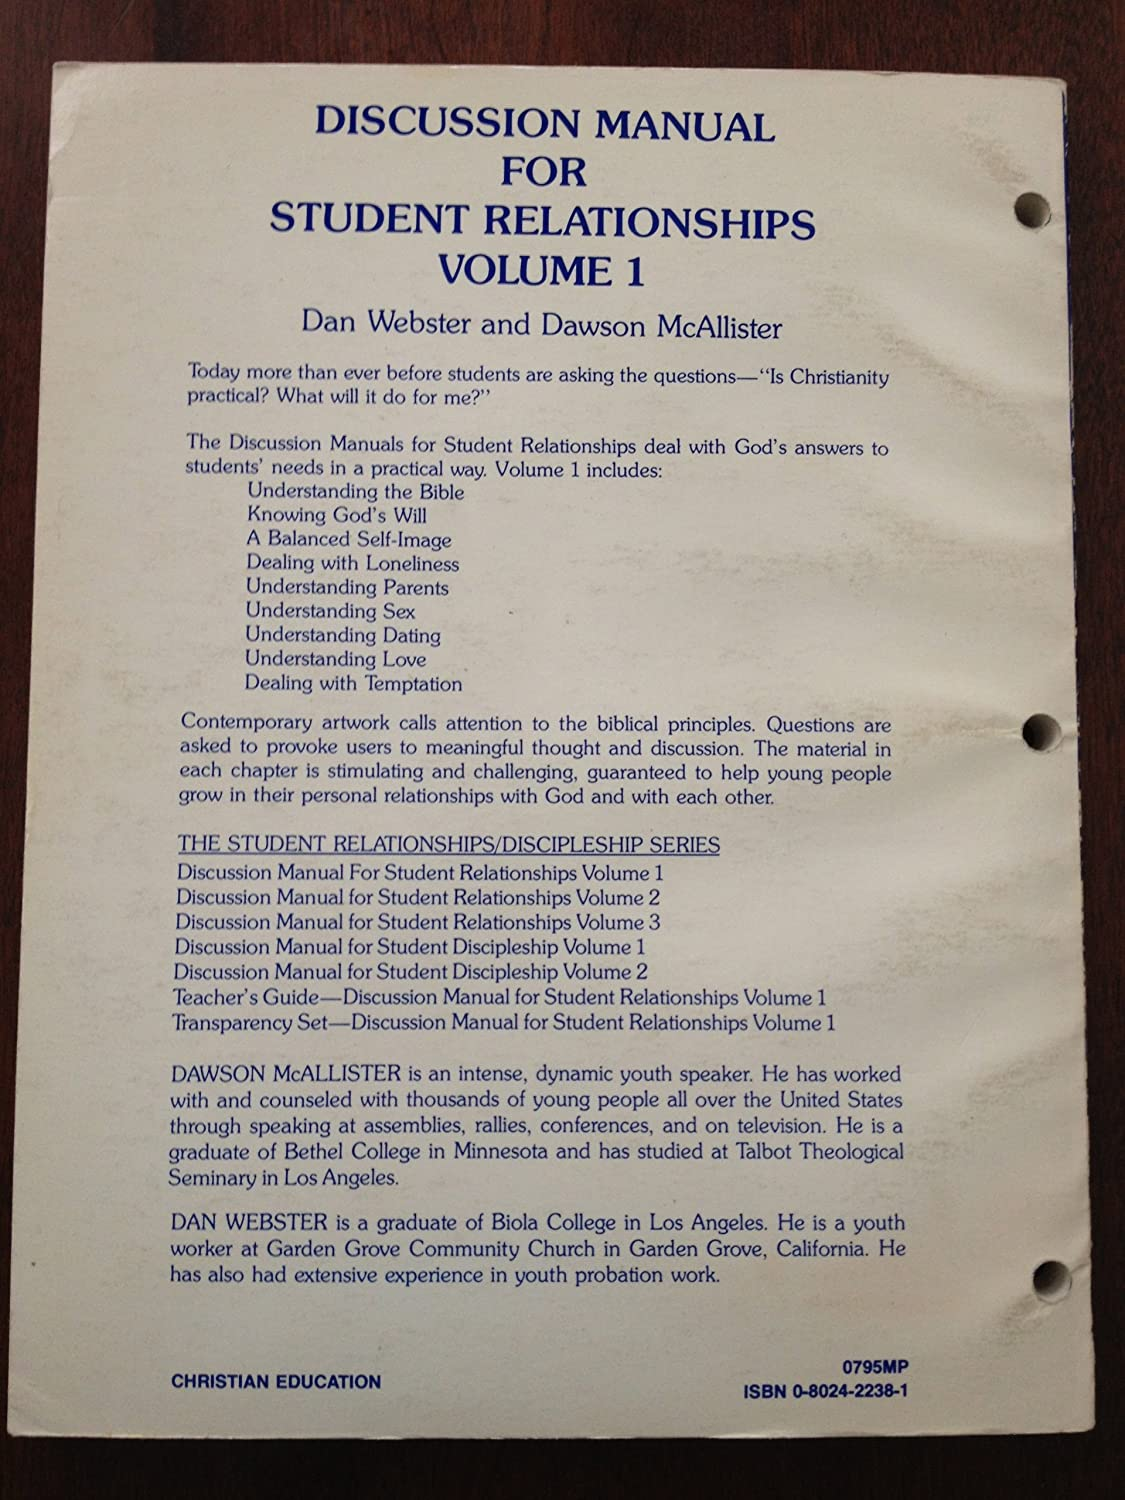 Amazon.com: DISCUSSION MANUAL FOR STUDENT RELATIONSHIPS Volume 1 Vol. One:  Dan Webster: Health & Personal Care